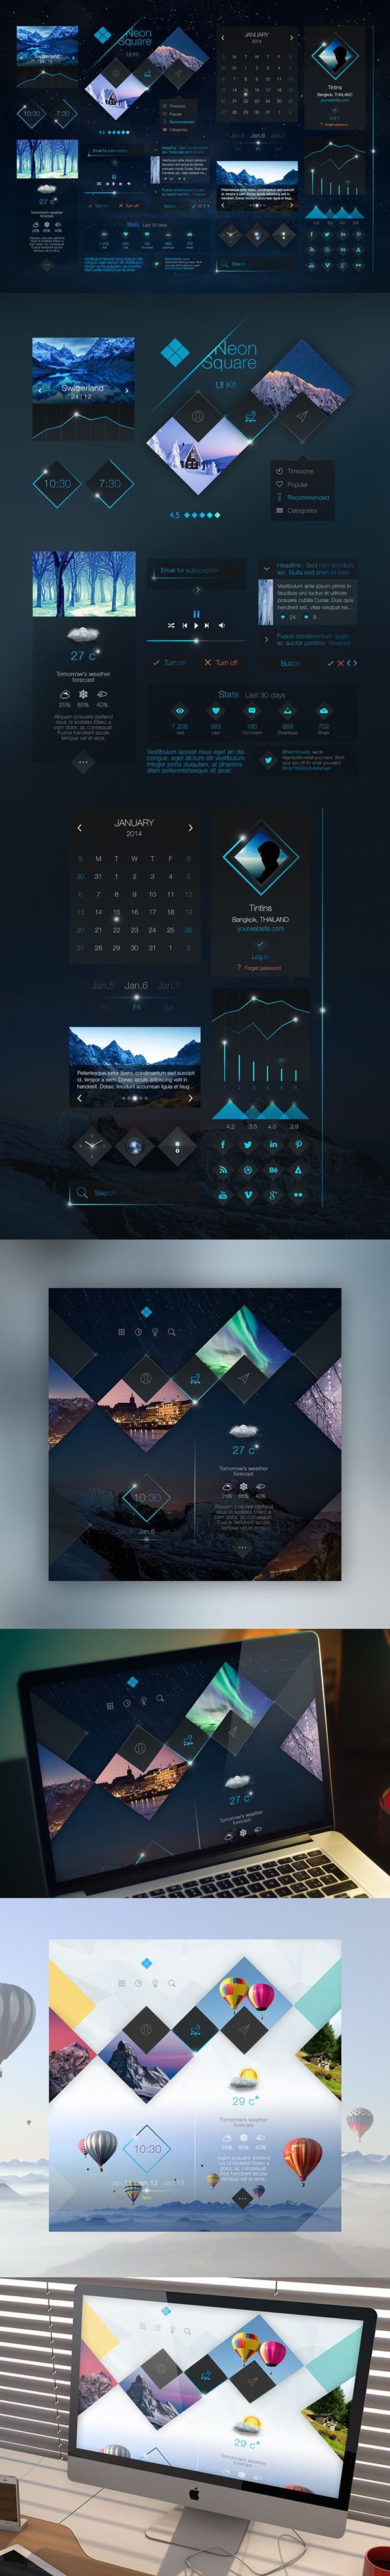 Neon Square UI Kit by Tintin s., via Behance